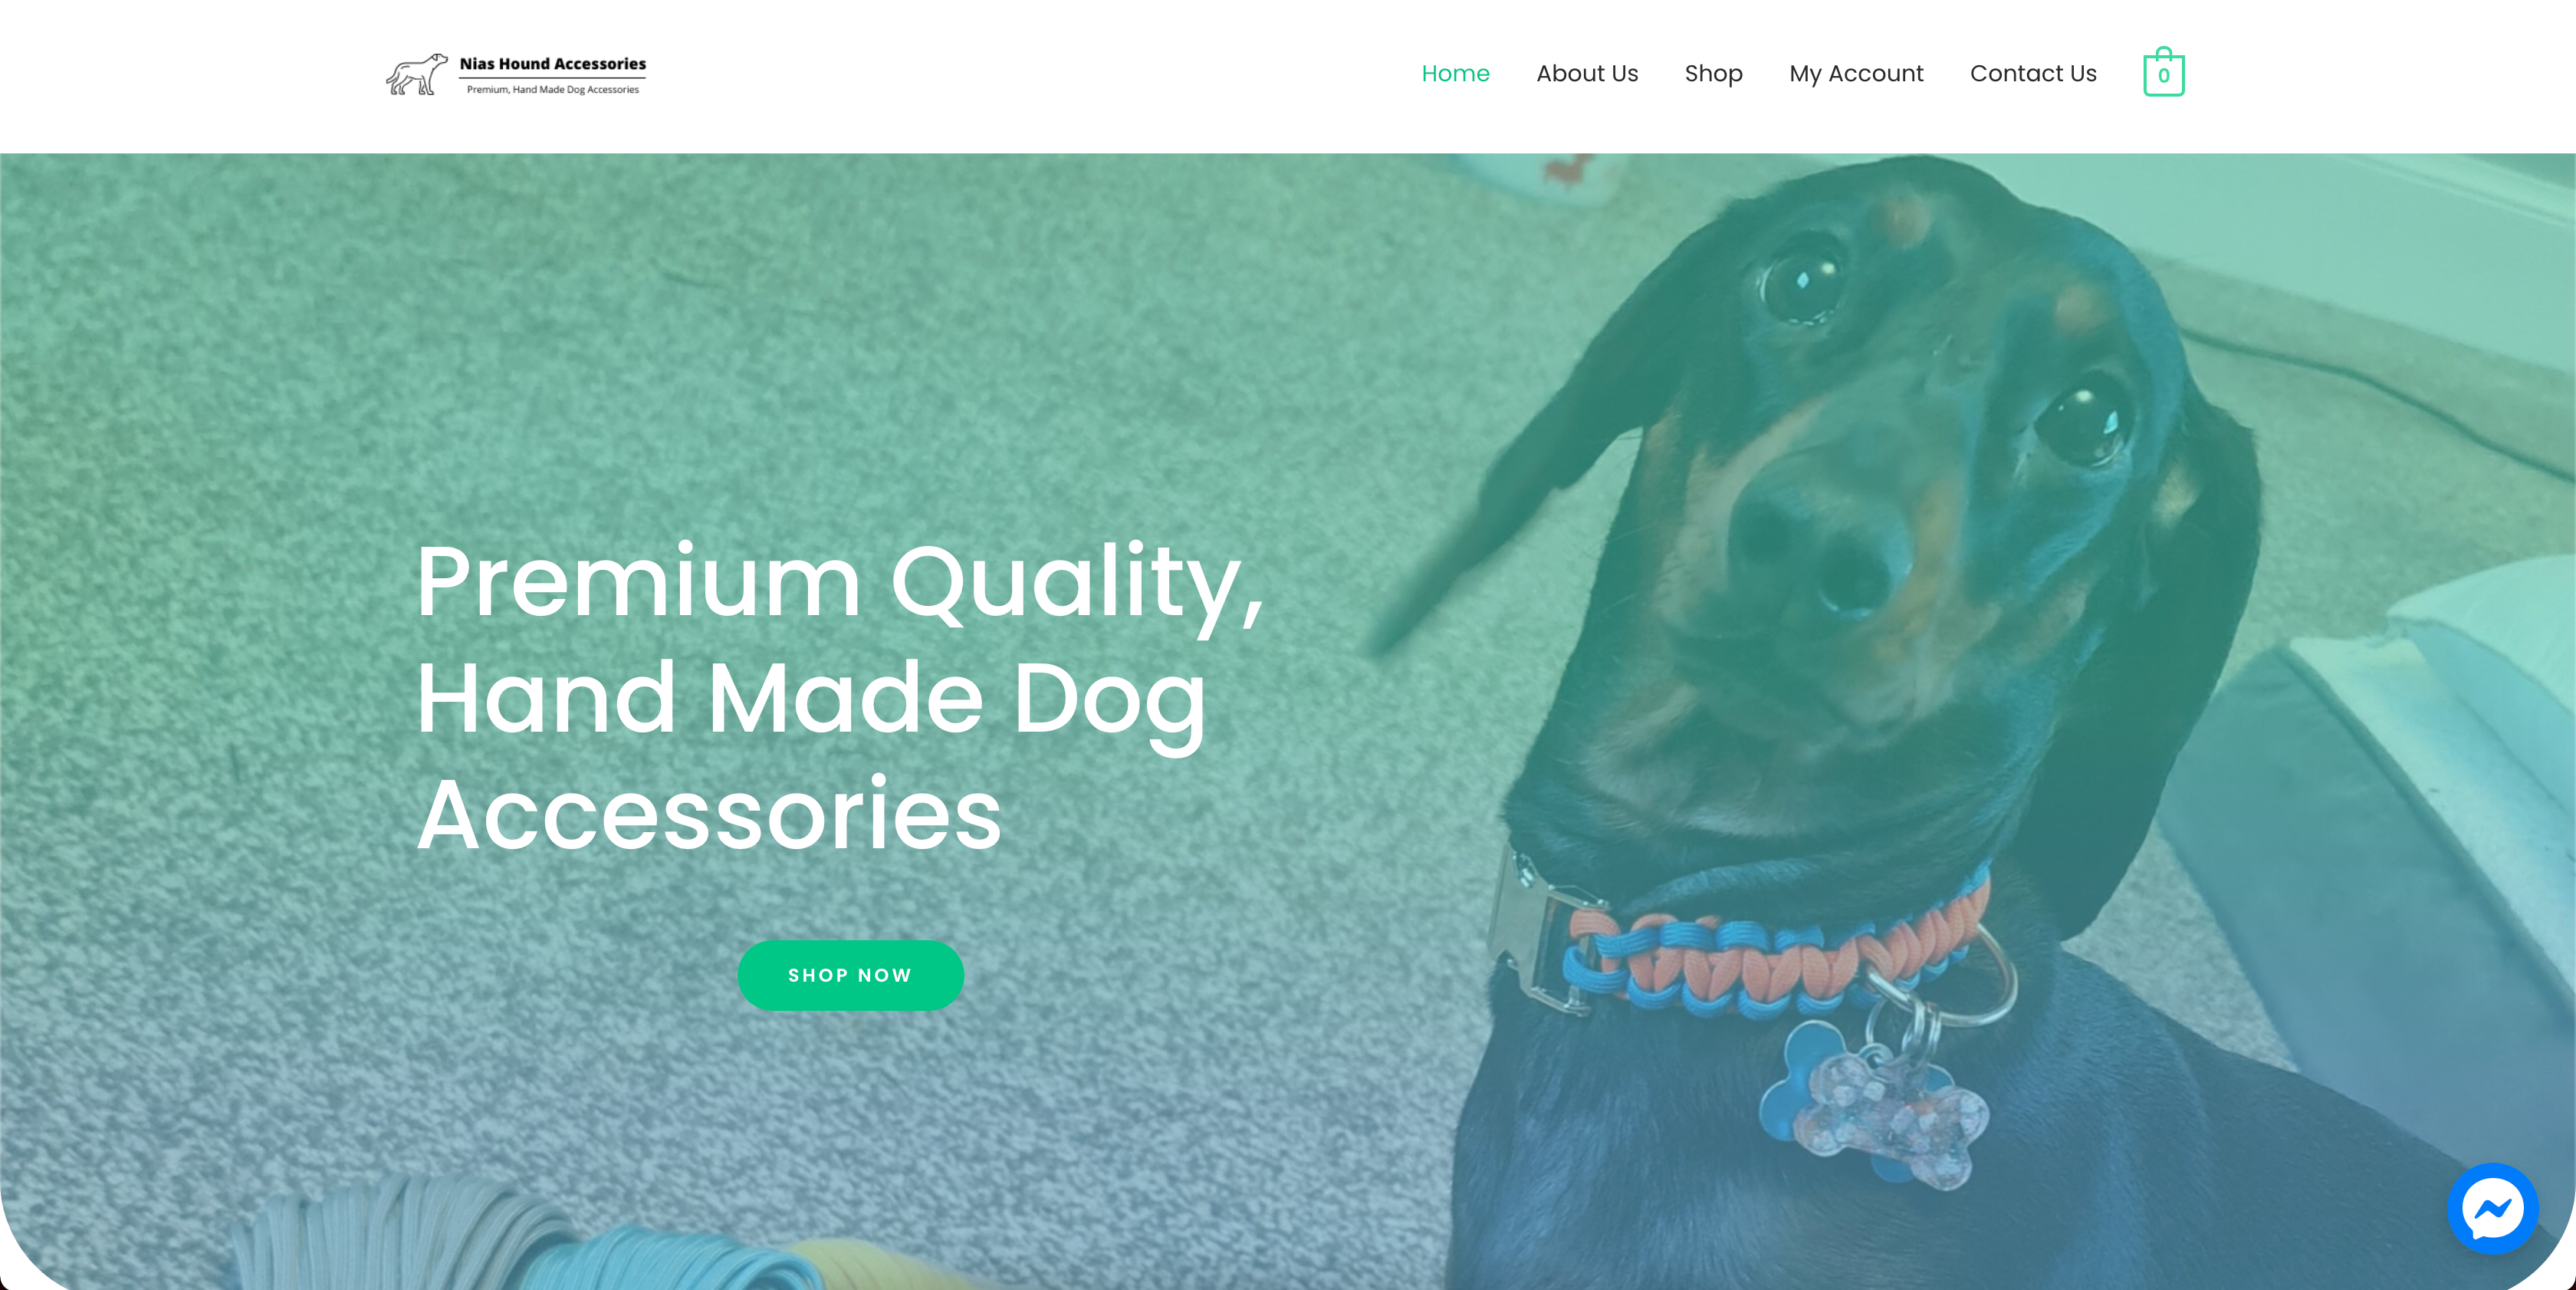 Nias Hound Accessories ecommerce web design by KY Designs in Fife.